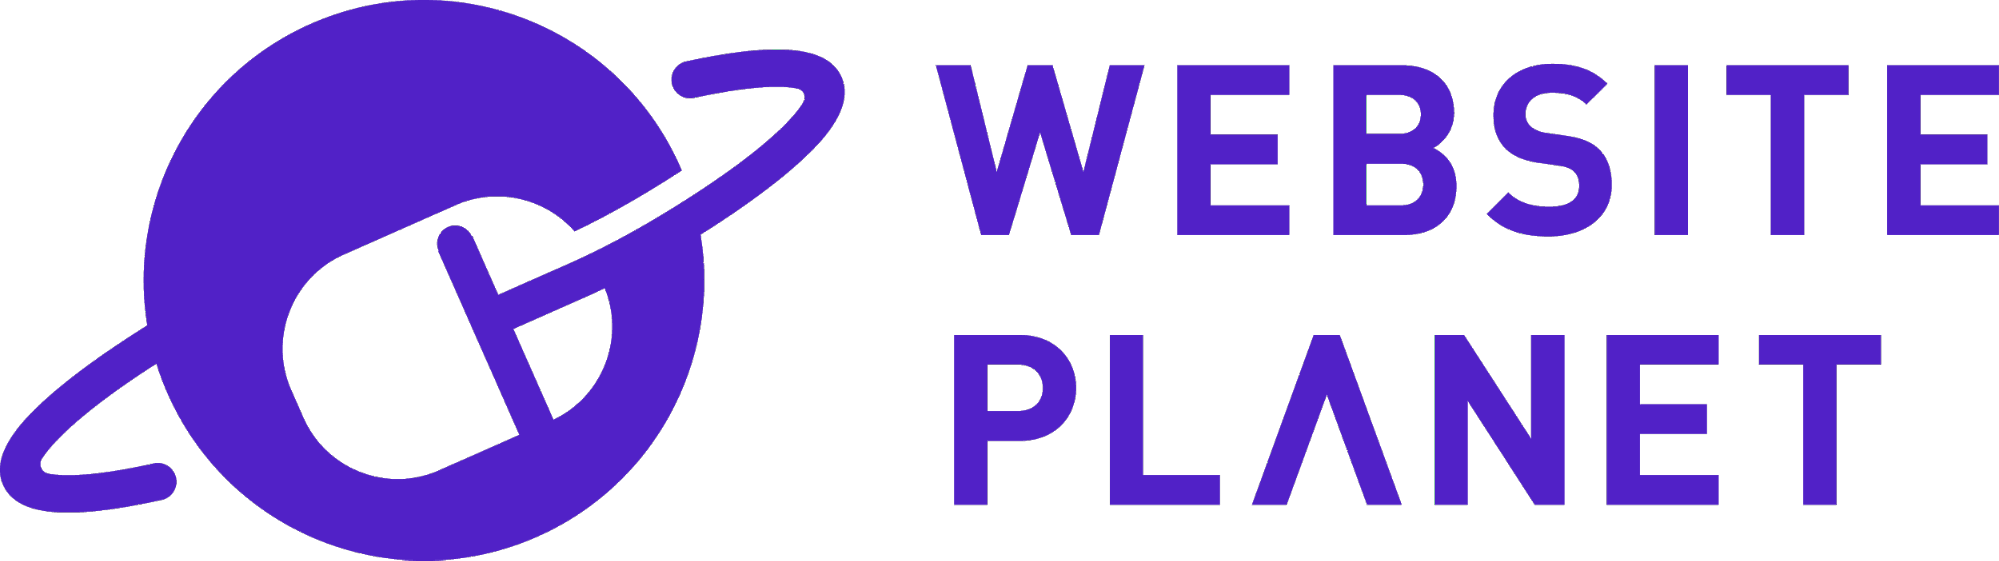 Website Planet logo from DesignCrowd